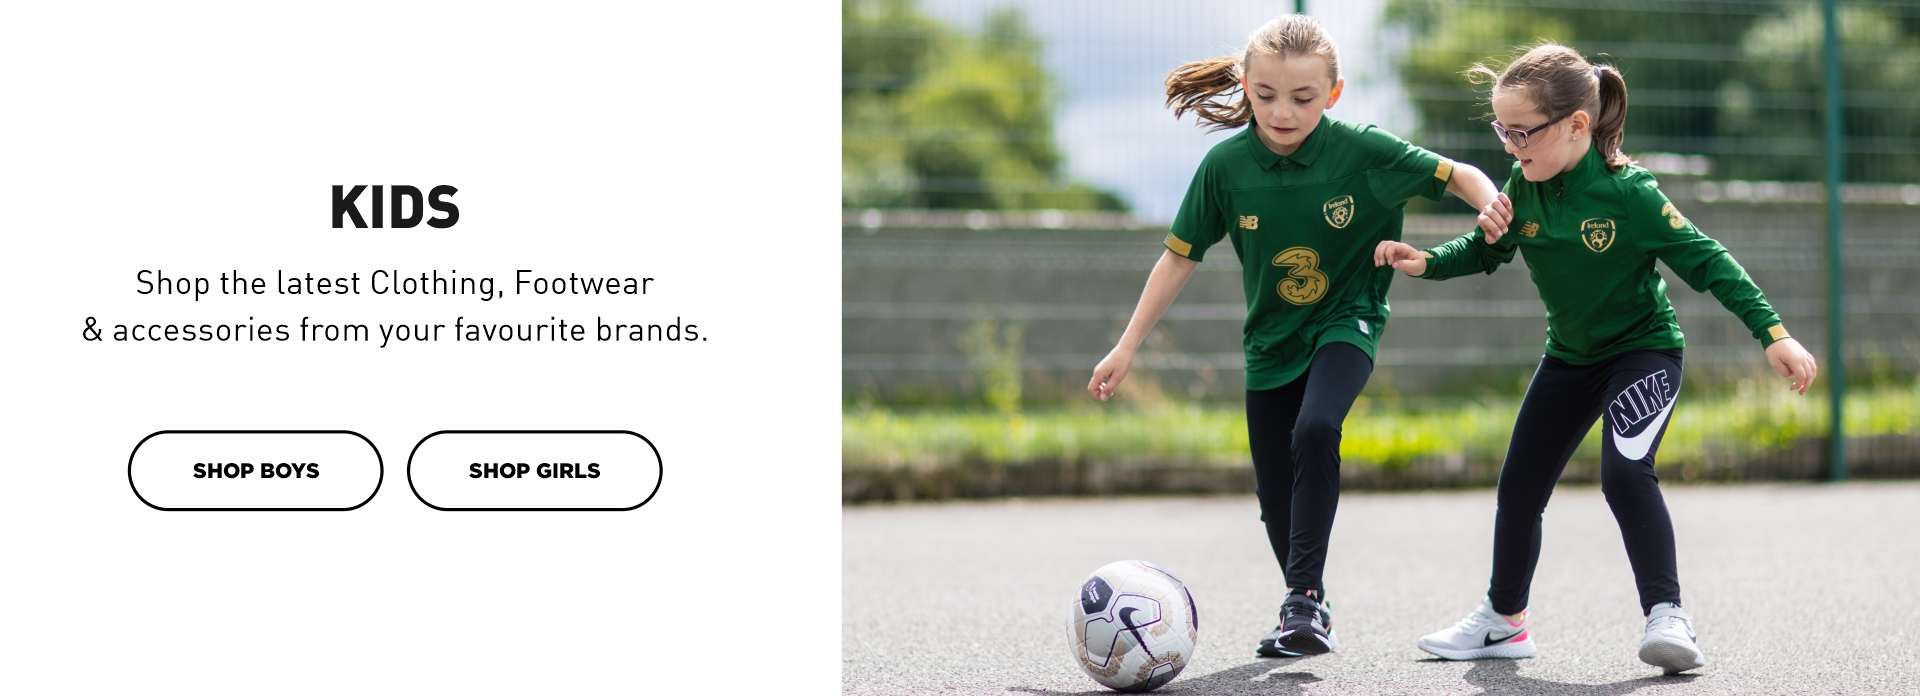 Shop Kids Clothing, Footwear and Accessories